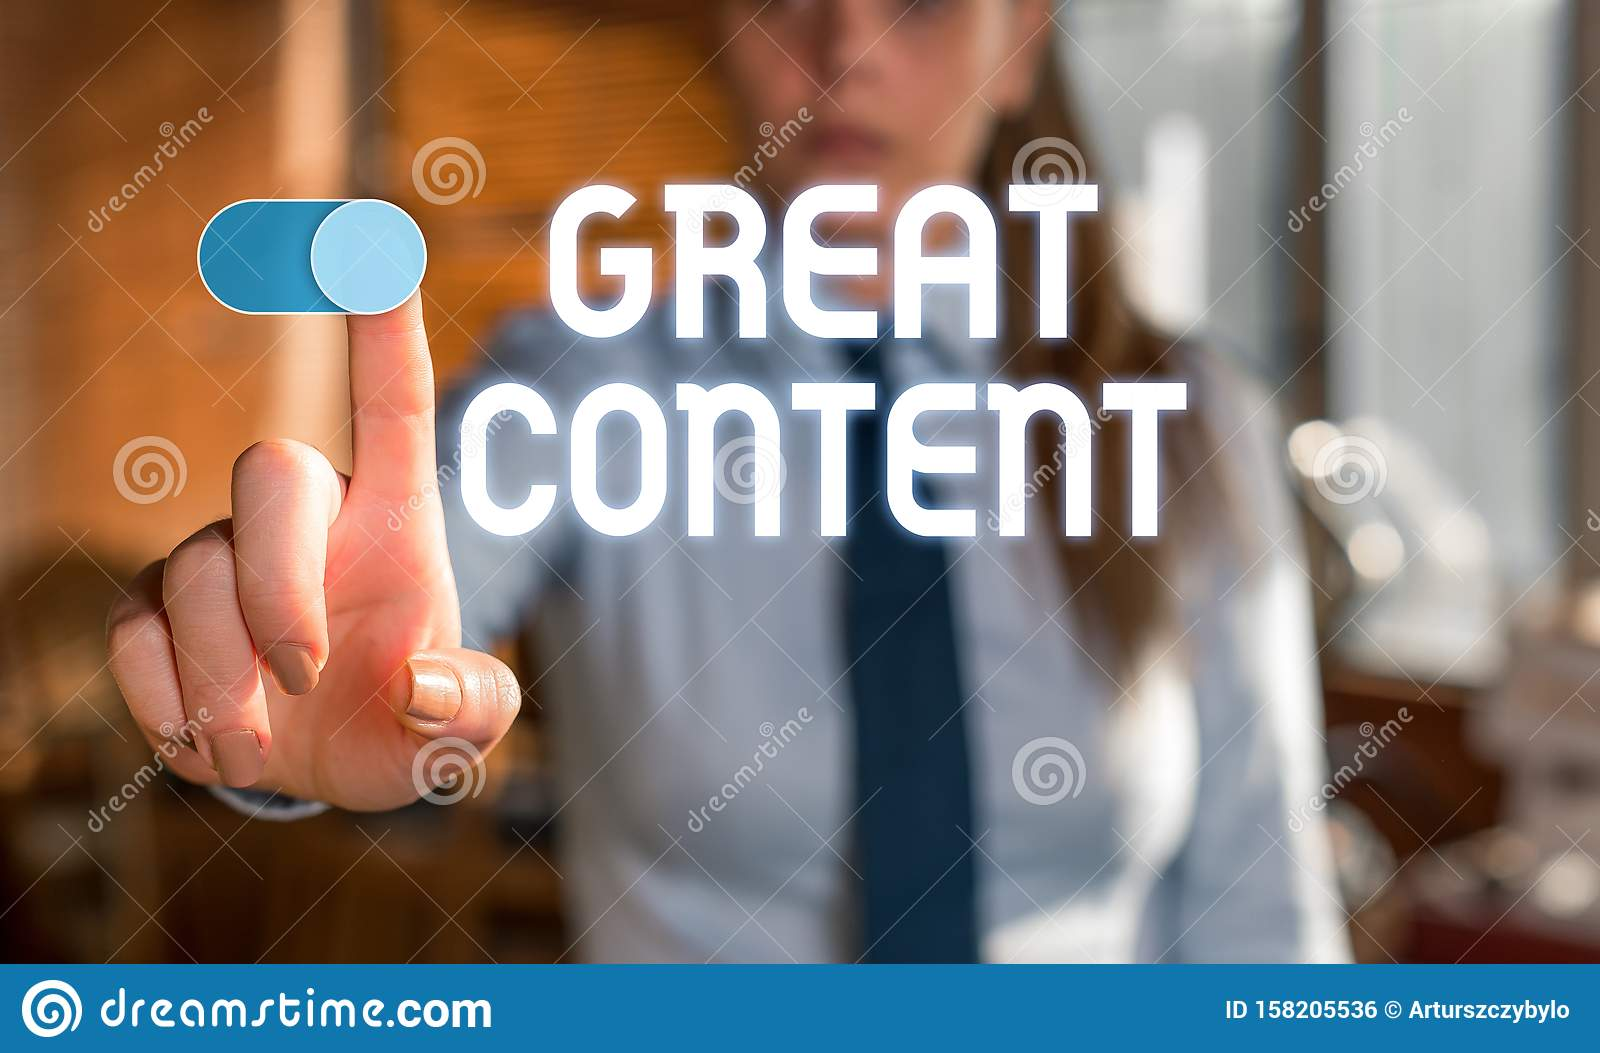 Text sign showing Great Content. Conceptual photo Satisfaction Motivational Readable Applicable Originality Blurred